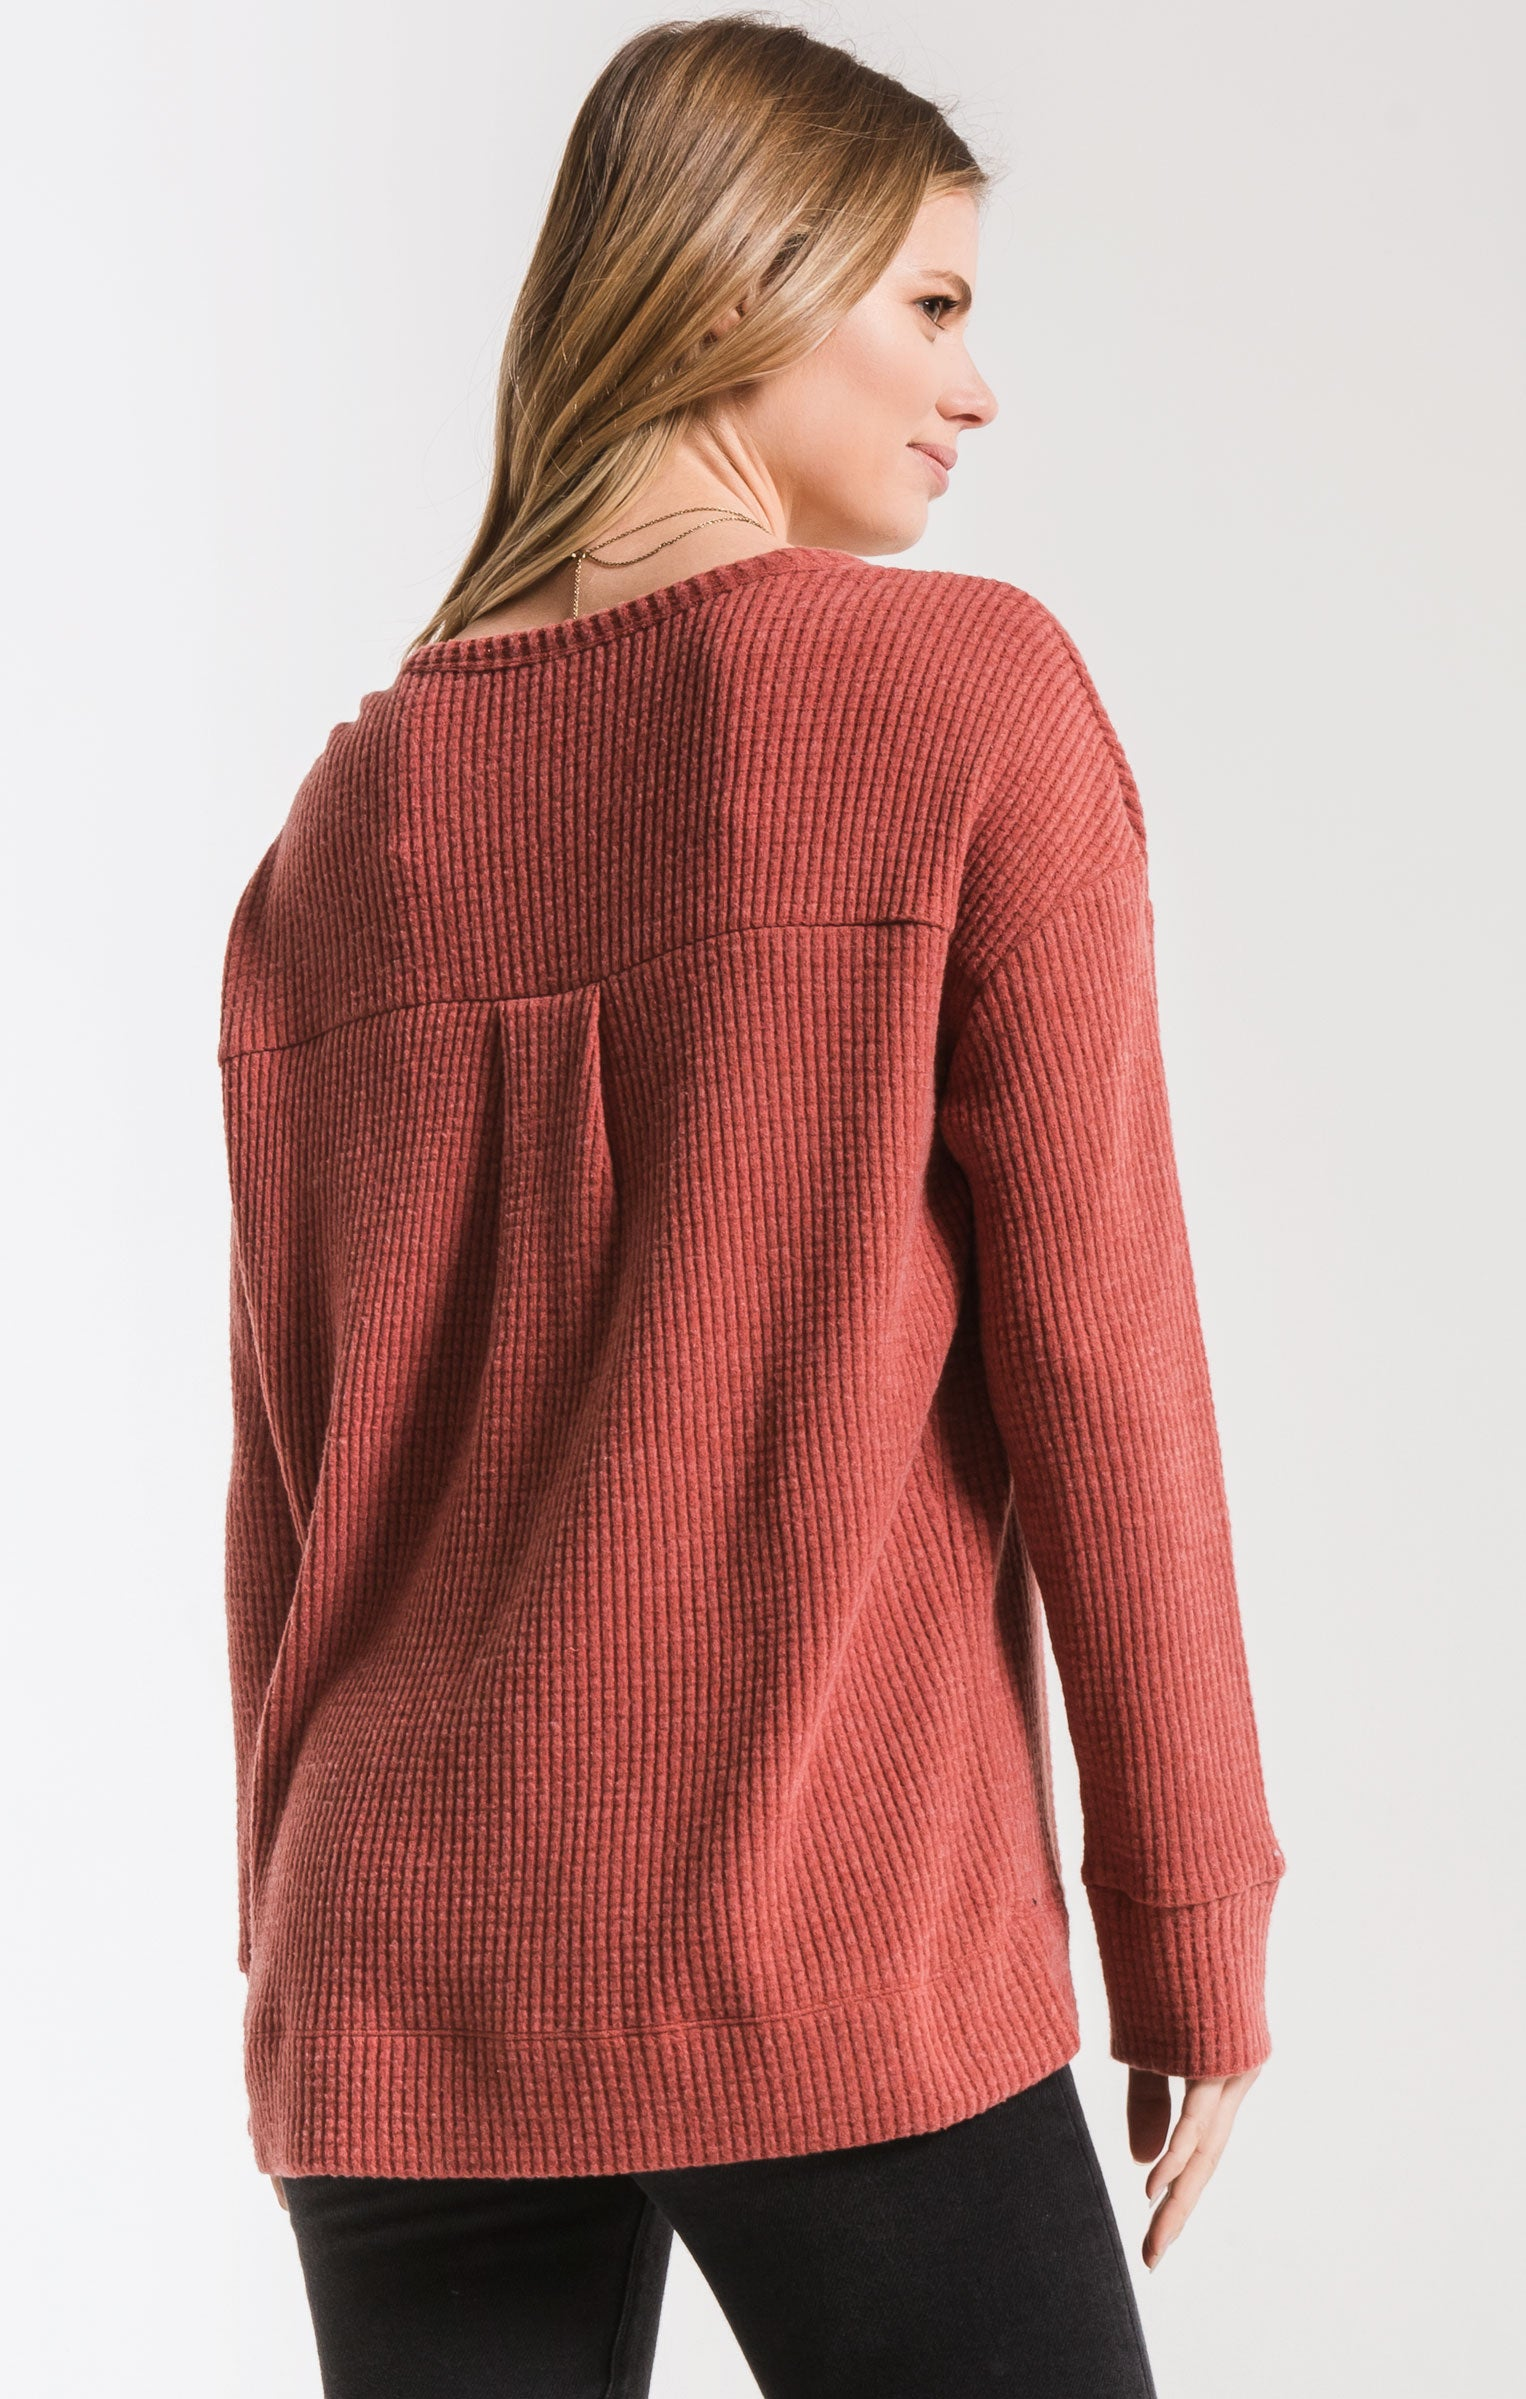 Tops The Waffle Thermal Split Neck Top Mesa Red